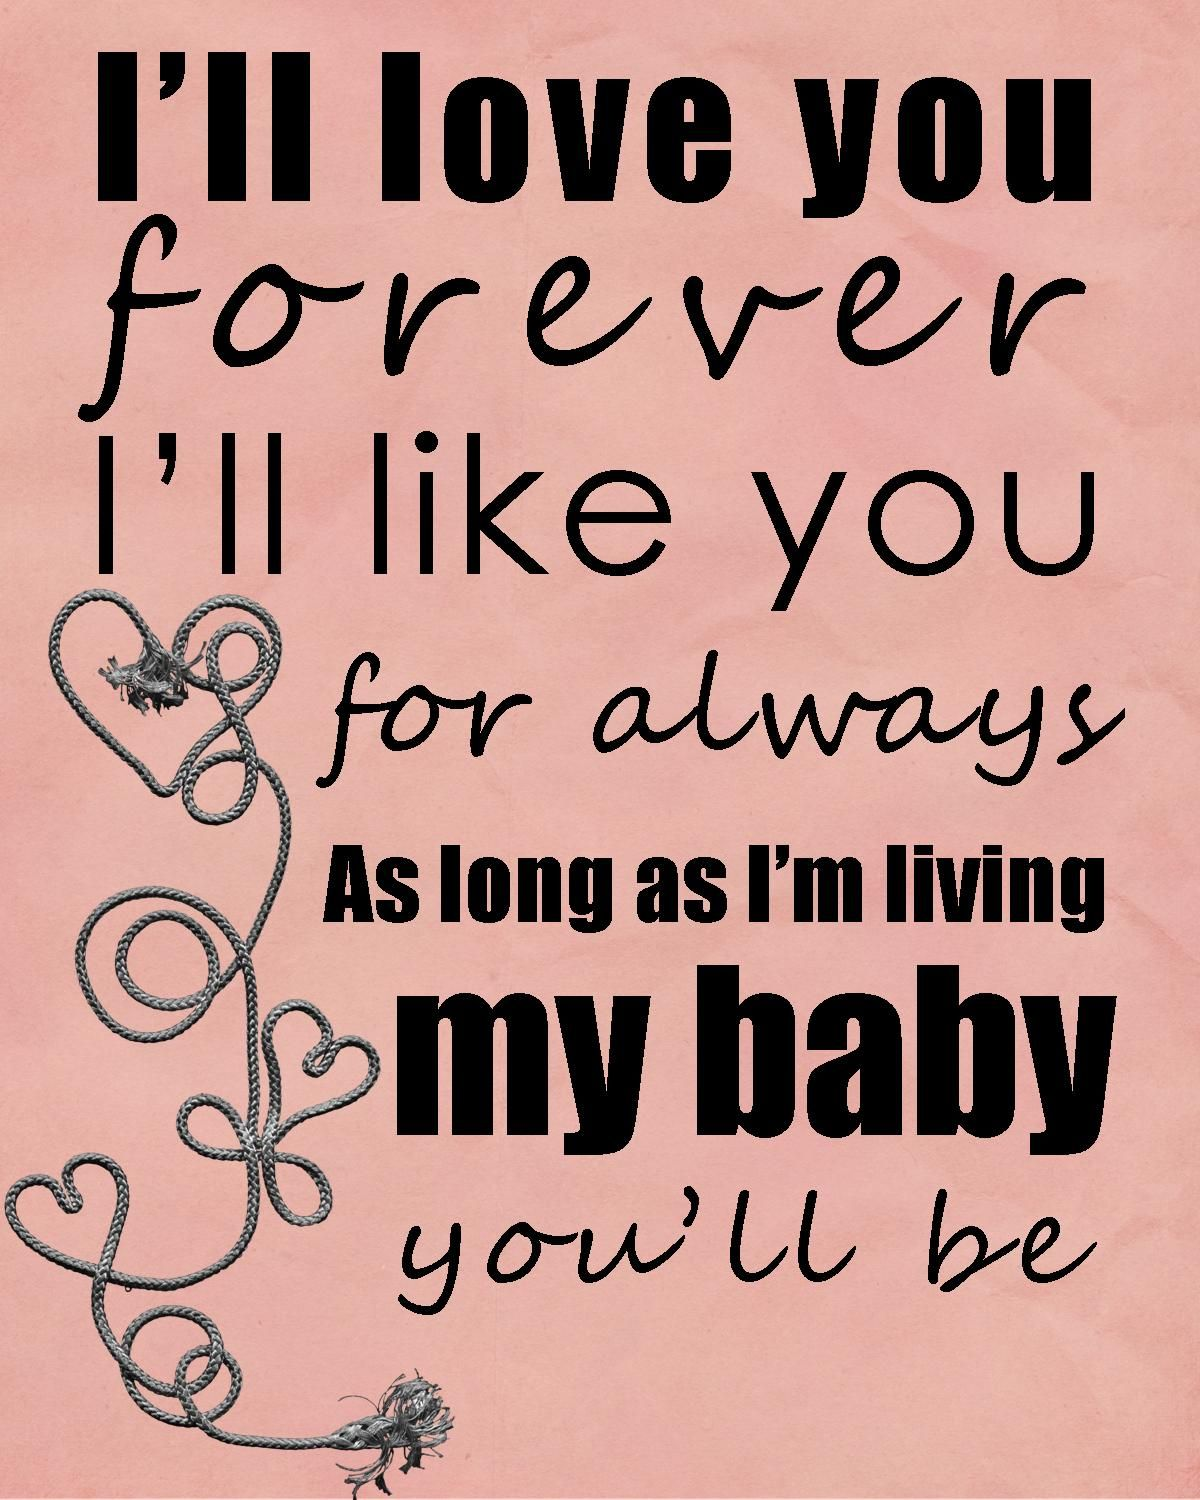 Quotes About Love: I Love My Son Quotes | My Amazing Boy | Love my